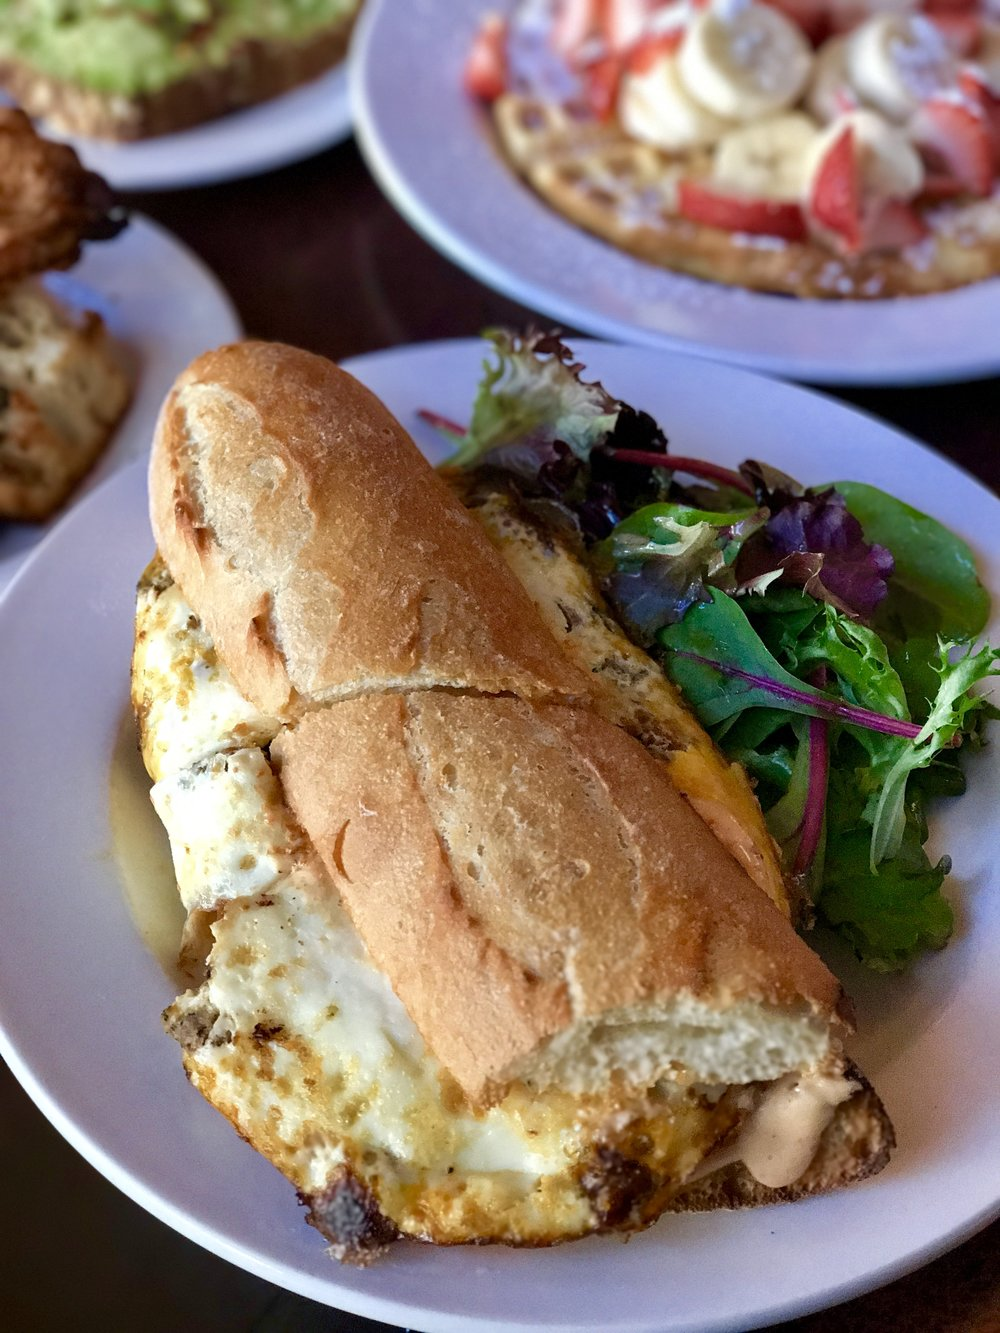 Baked eggs sandwich with merguez sausages, parmesan cheese, chipotle mayo on French baguette.